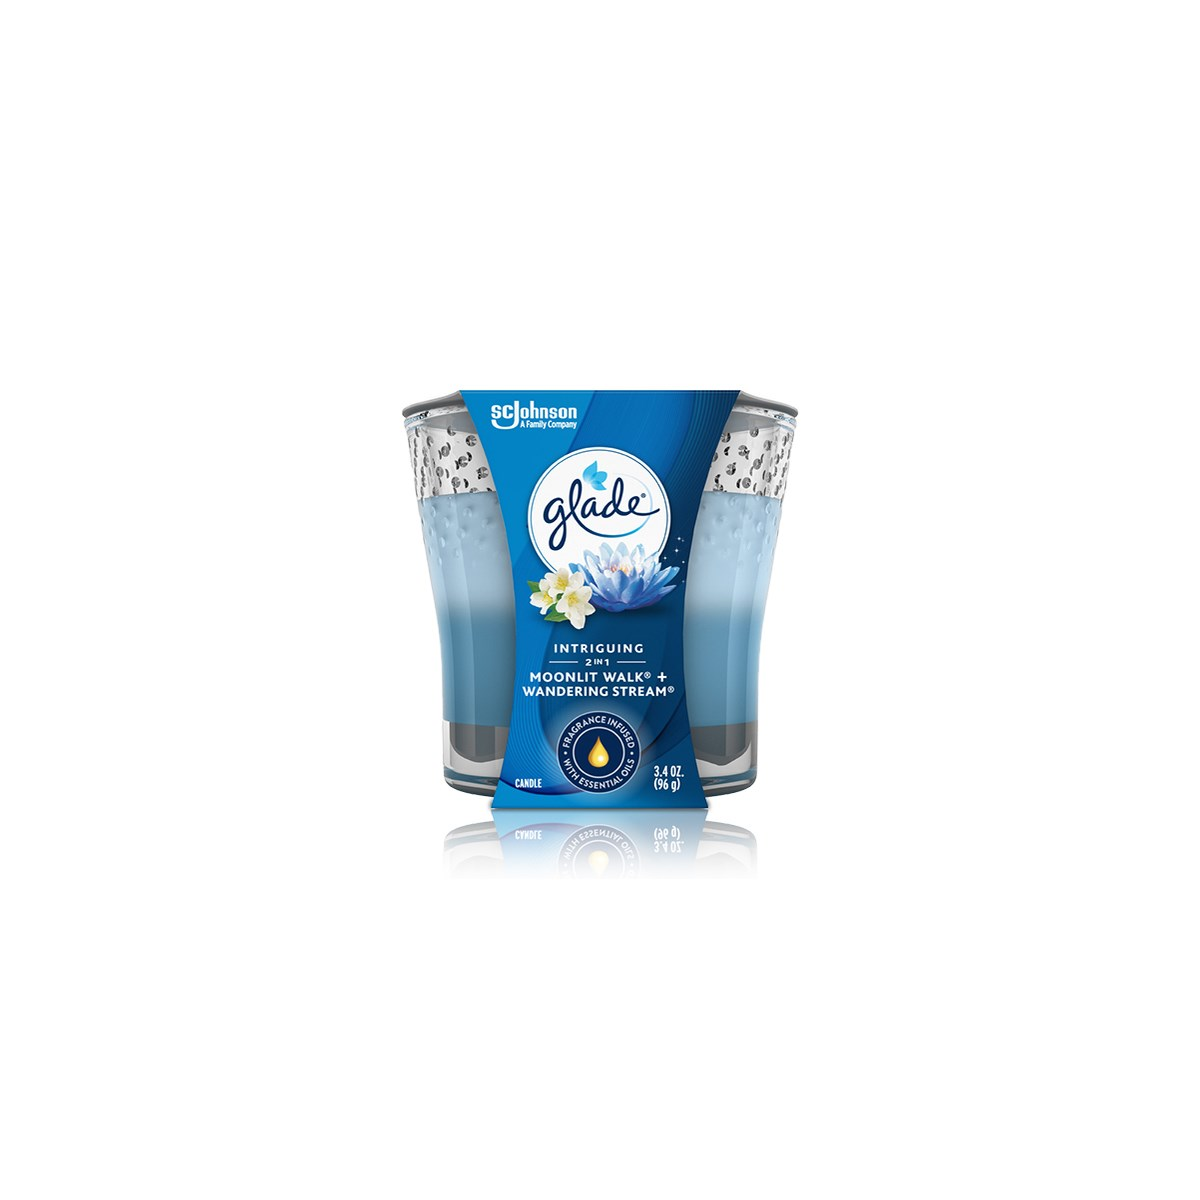 GLADE SCENTED CANDLES MOONLIT WANDERING 6/3.4OZ